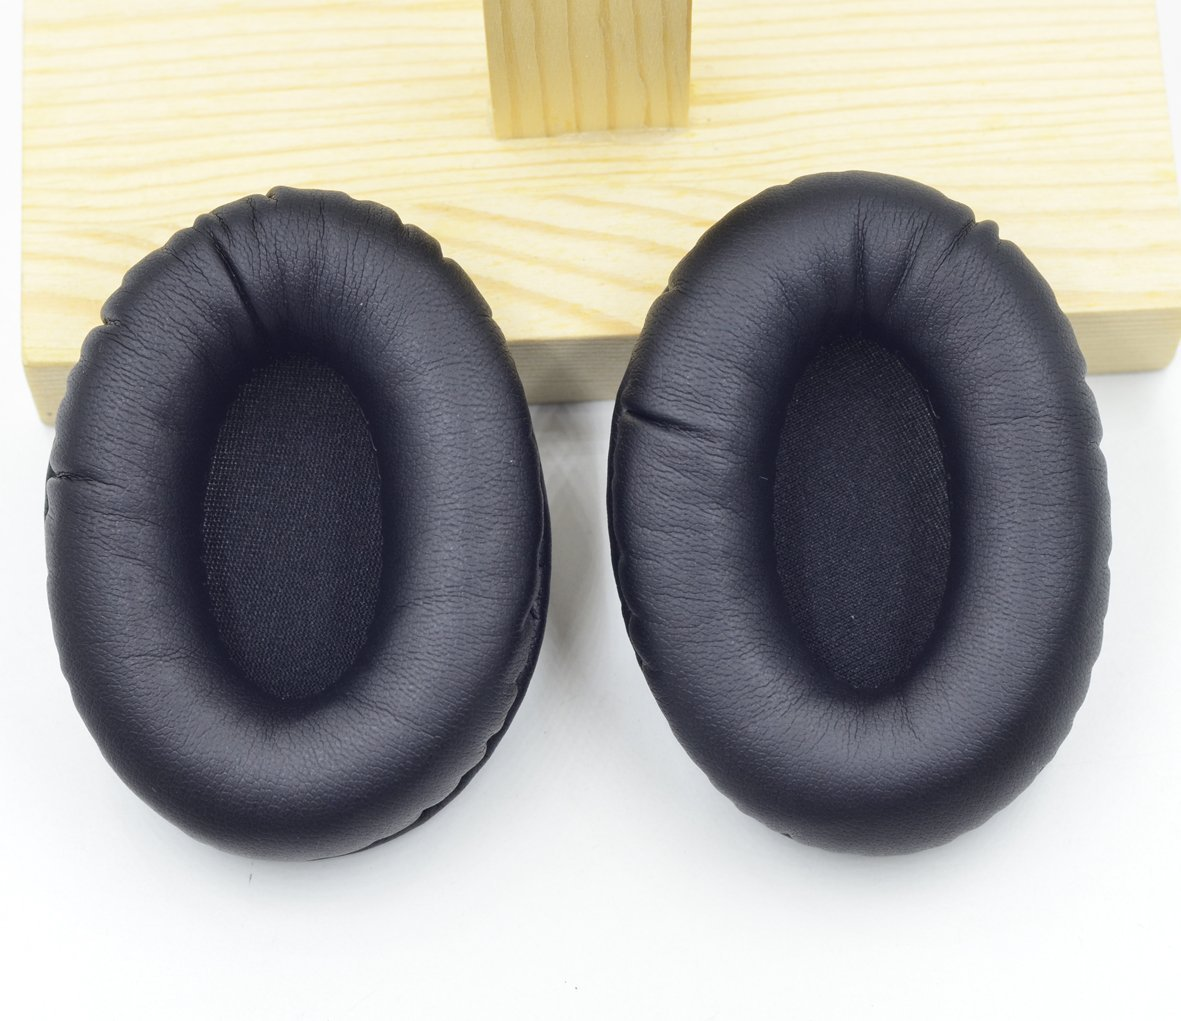 6bbd6ff4355 Caokk Replacement Ear Pads 1 Pair Soft Earpads Compatible for Soul SL150  Pro Hi-Def On-Ear Headphones Headset,Foam Cushions Pillow Covers Cups  Repair Parts